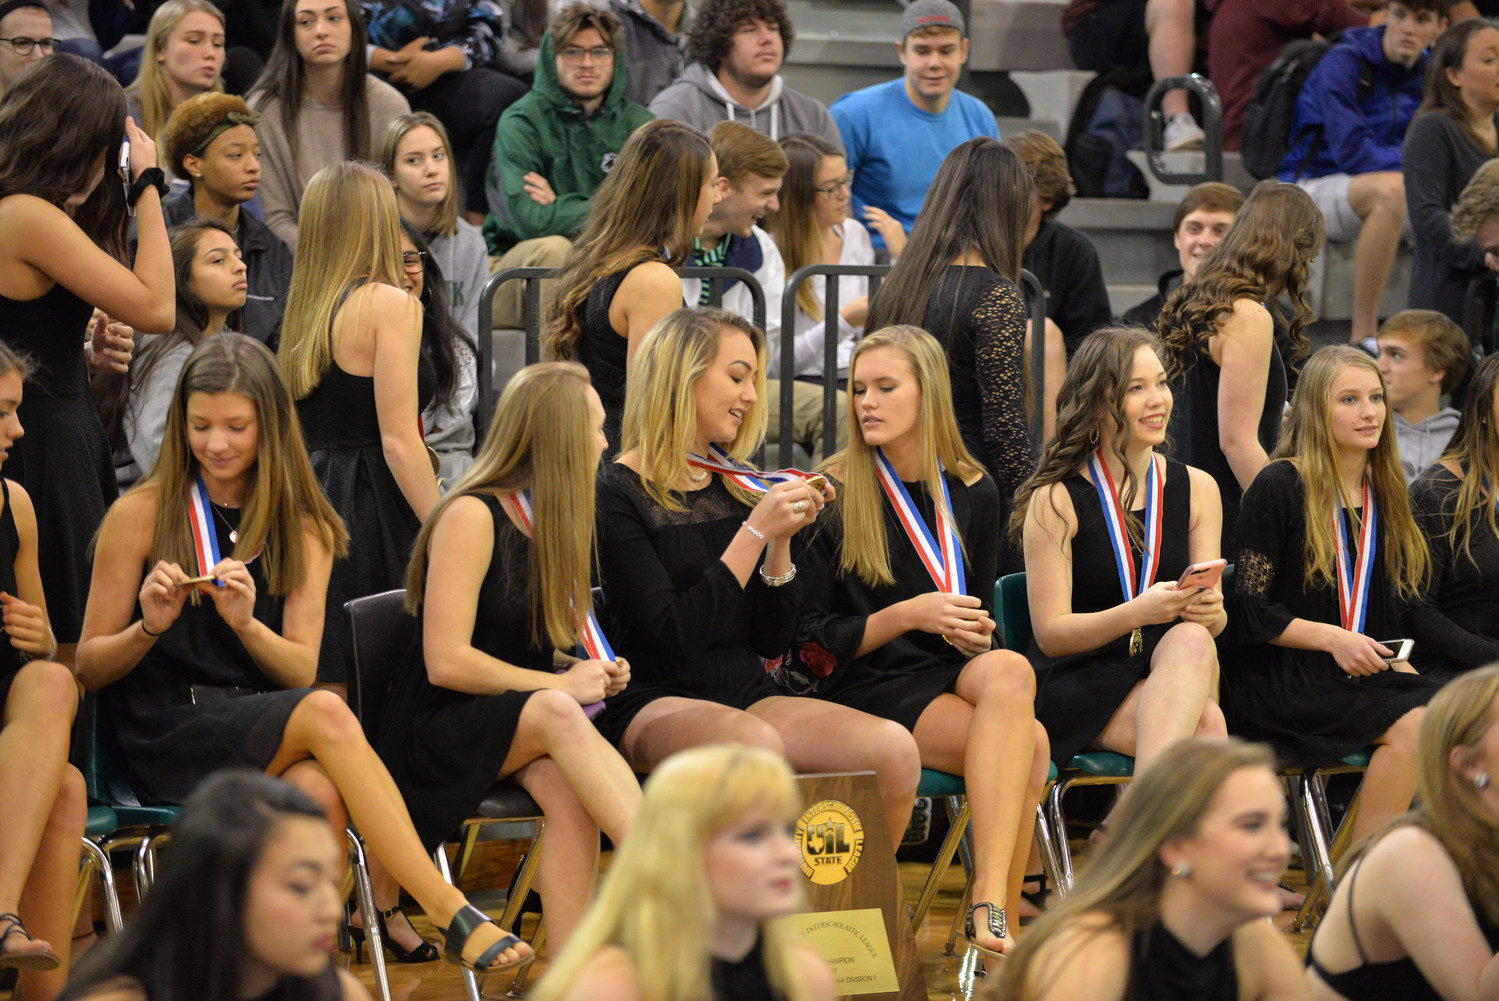 Cheerleaders compare UIL medals during the pep rally.